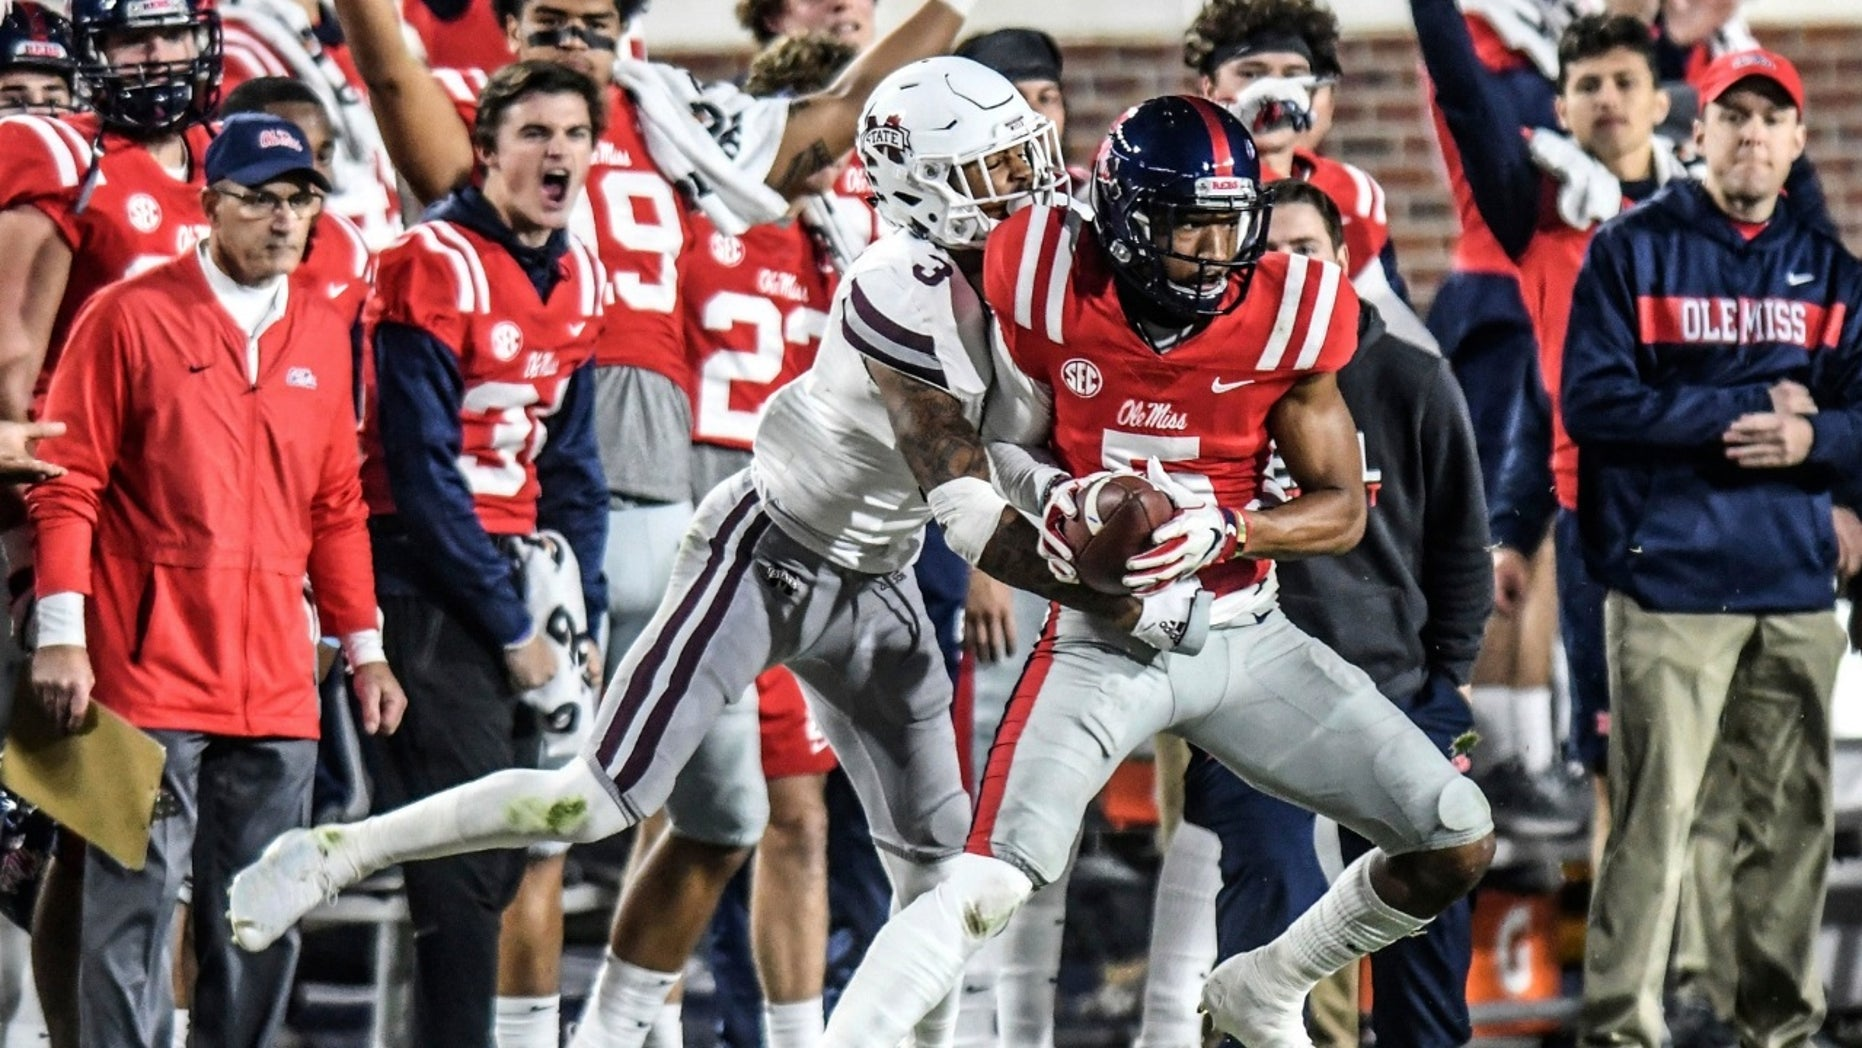 Four players were ejected from the Egg Bowl between Ole Miss and Mississippi State after a fight on Thursday, Nov. 22, 2018.